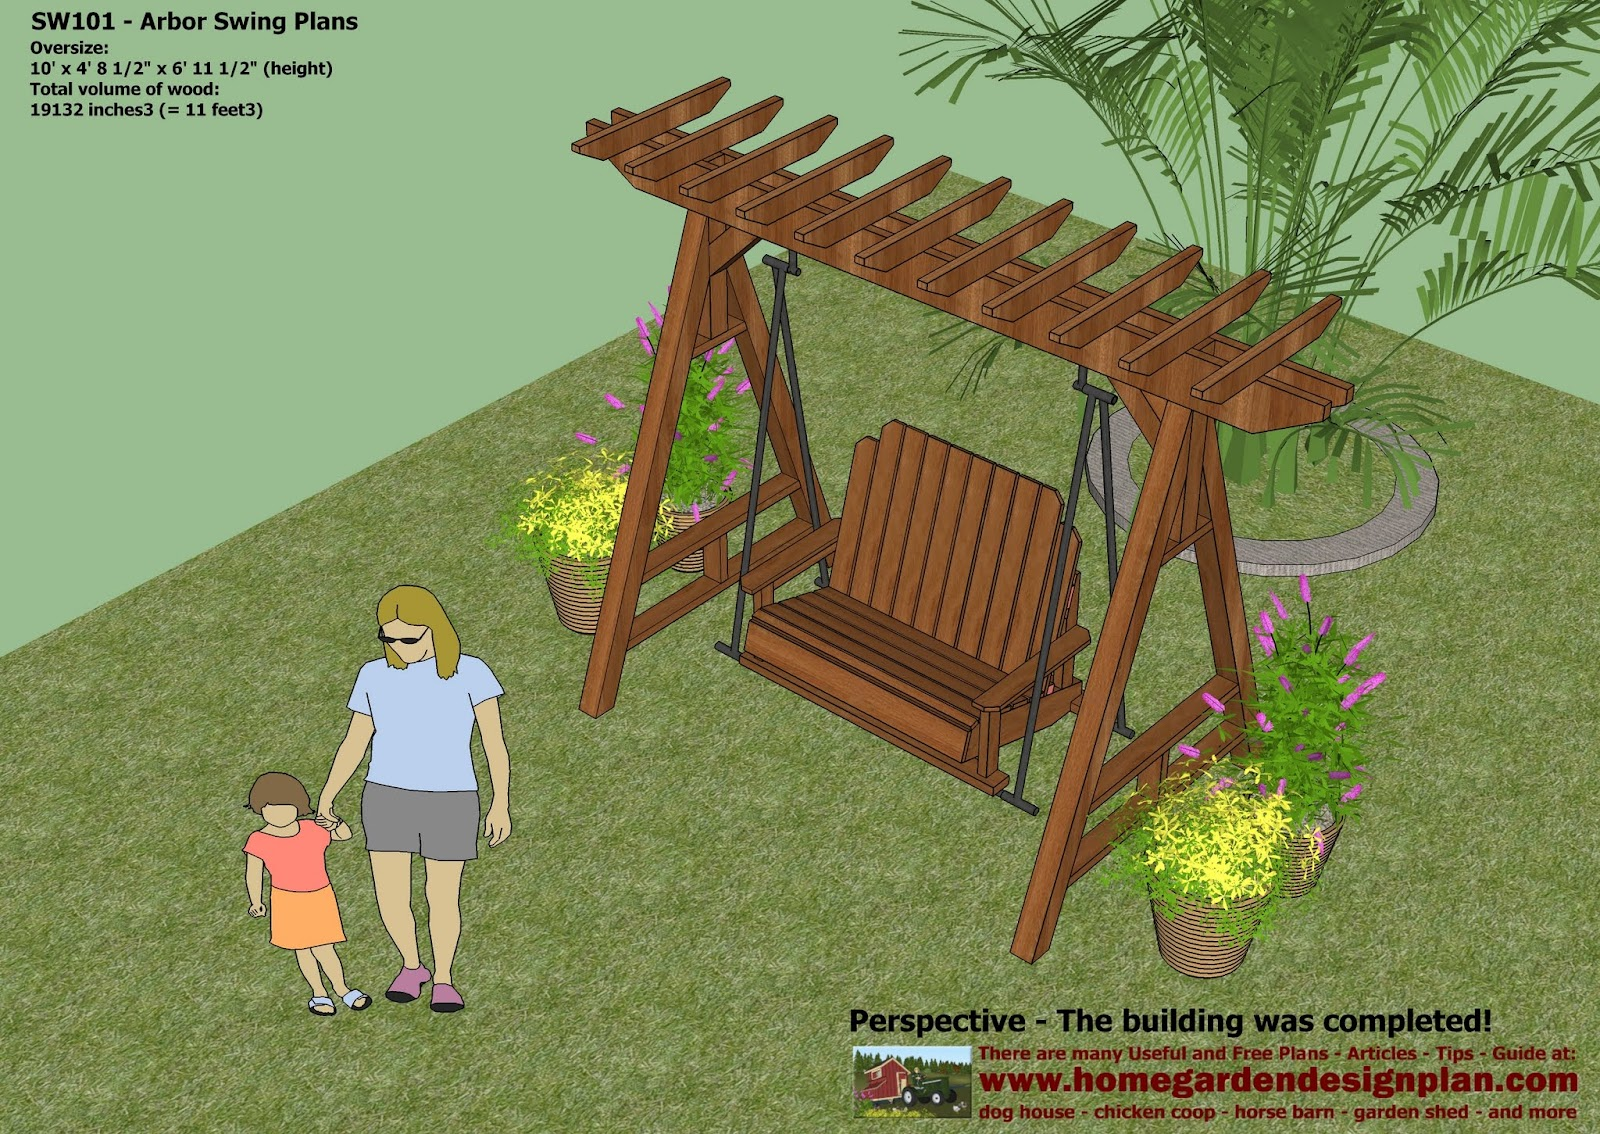 Arbor Arbor Swing Plans Construction Home Design 2017 - garden swing designs